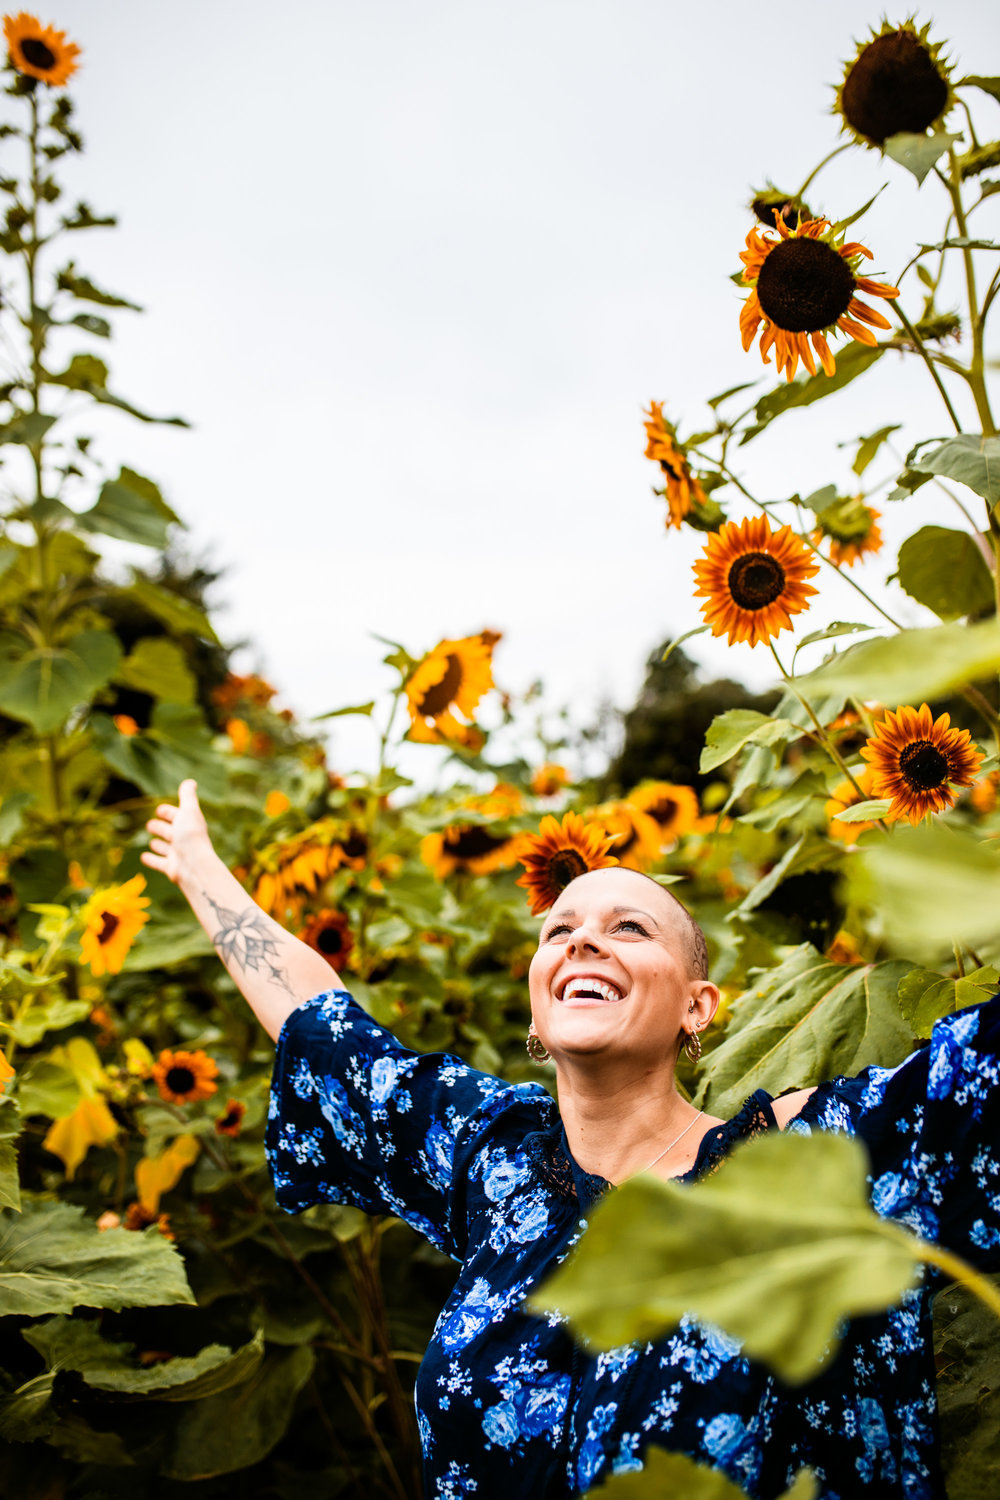 Steph_Sunflowers-14.jpg